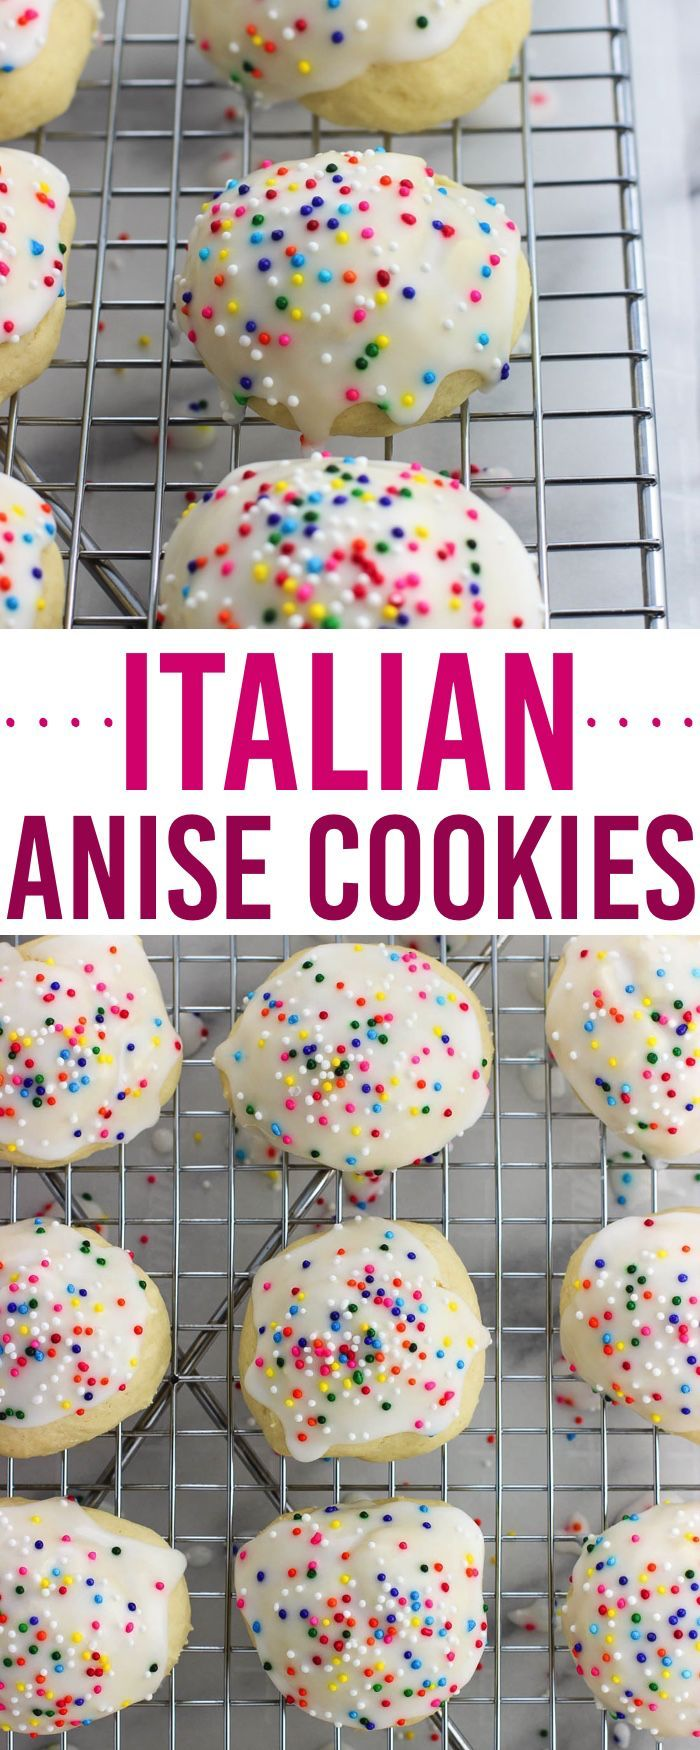 These classic Italian anise cookies are tender, easy, and covered in a glaze with sprinkles. Enjoy these cookies as part of a holiday cookie tray or year-round!